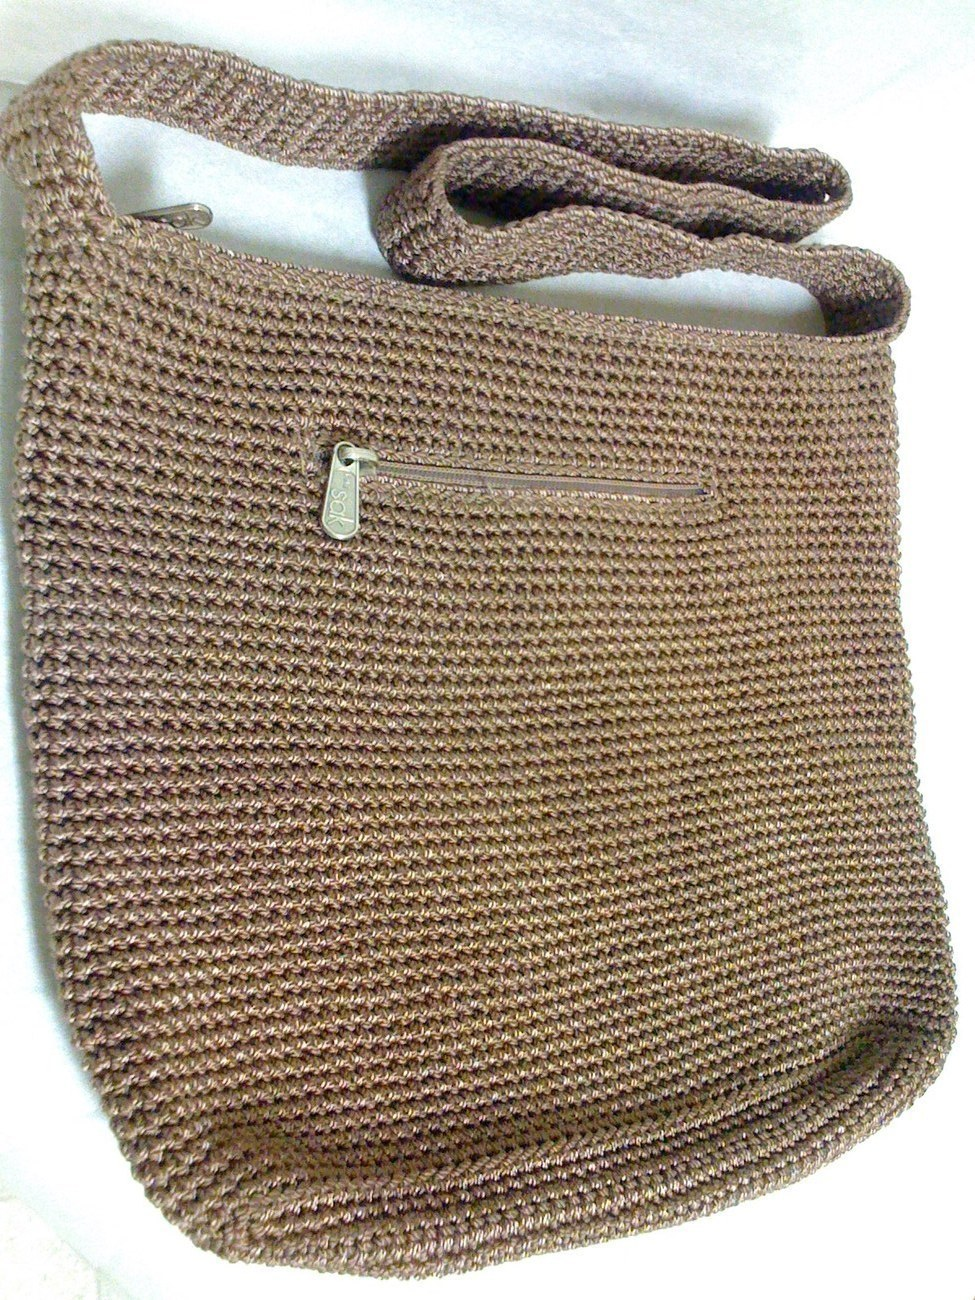 Le Sak Crochet Bags : THE SAK CLASSIC TAN CROCHET BAG Large - Handbags & Purses